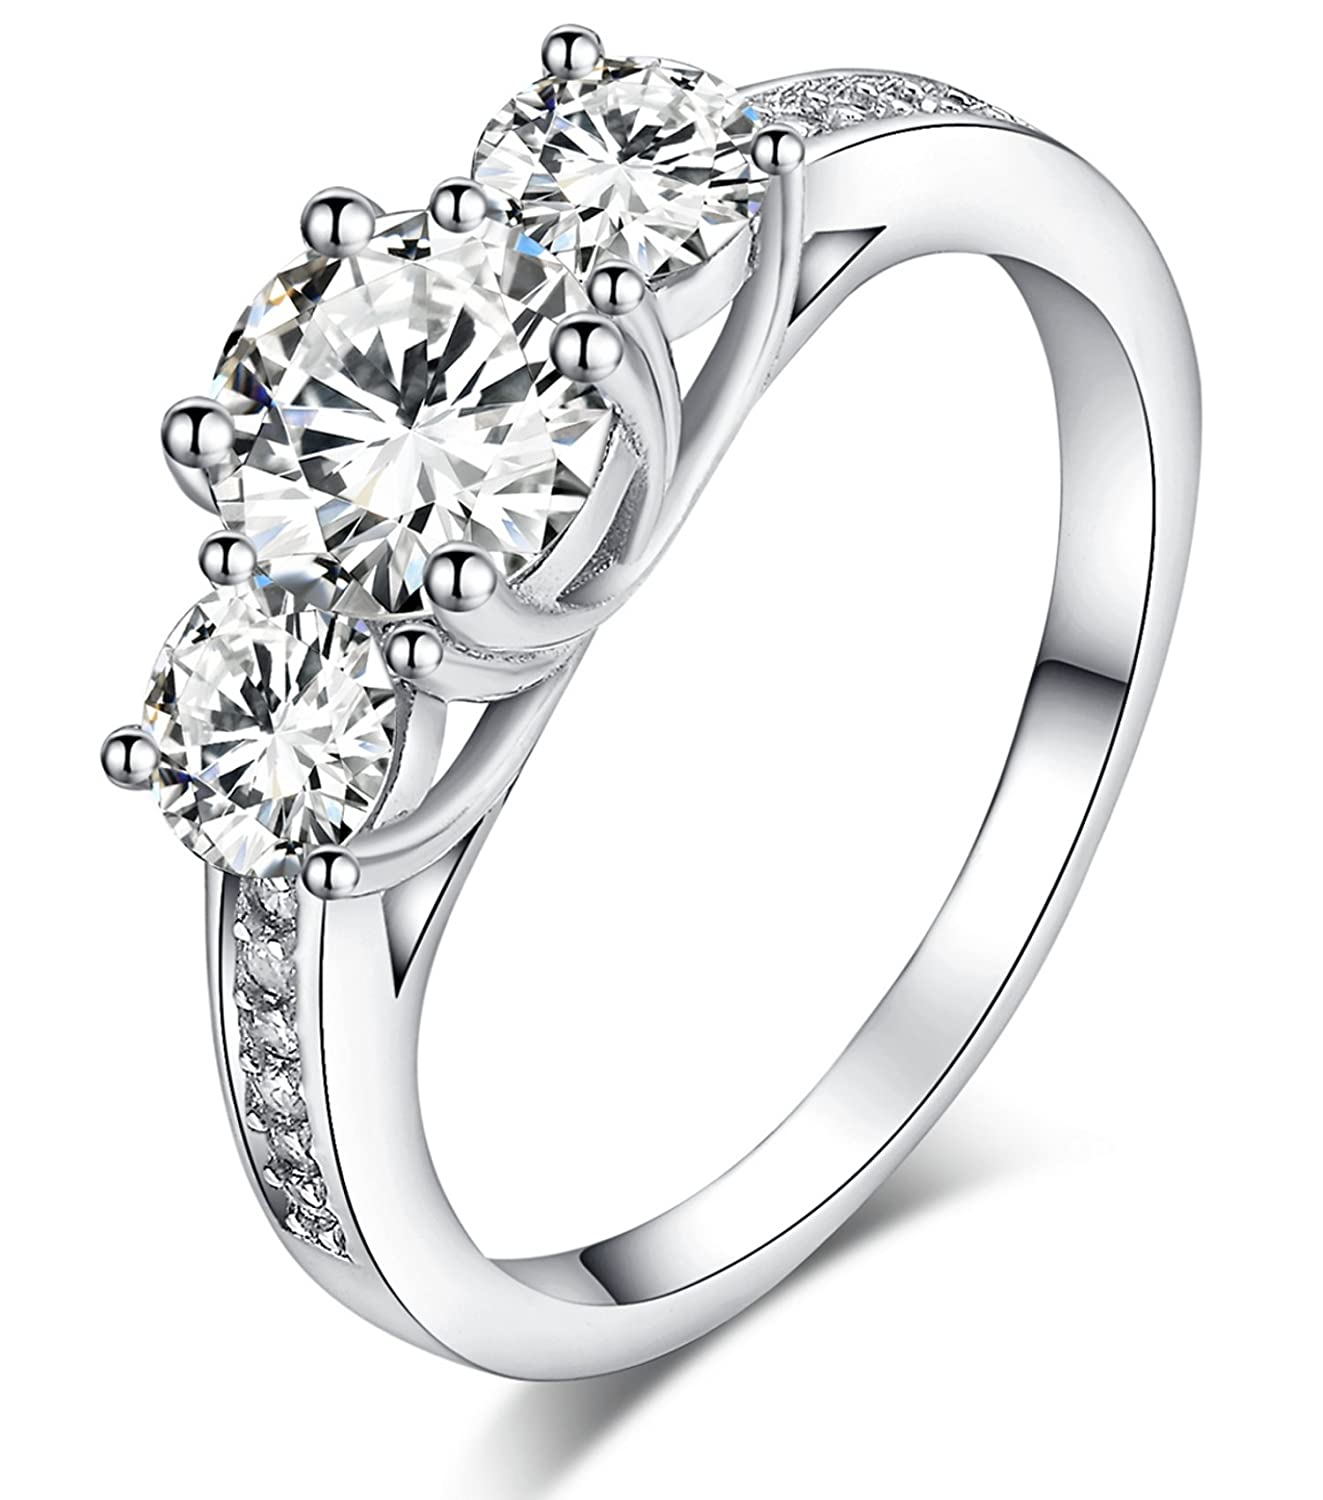 Top 10 Best Women s Diamond Engagement Rings Reviews 2016 2017 on